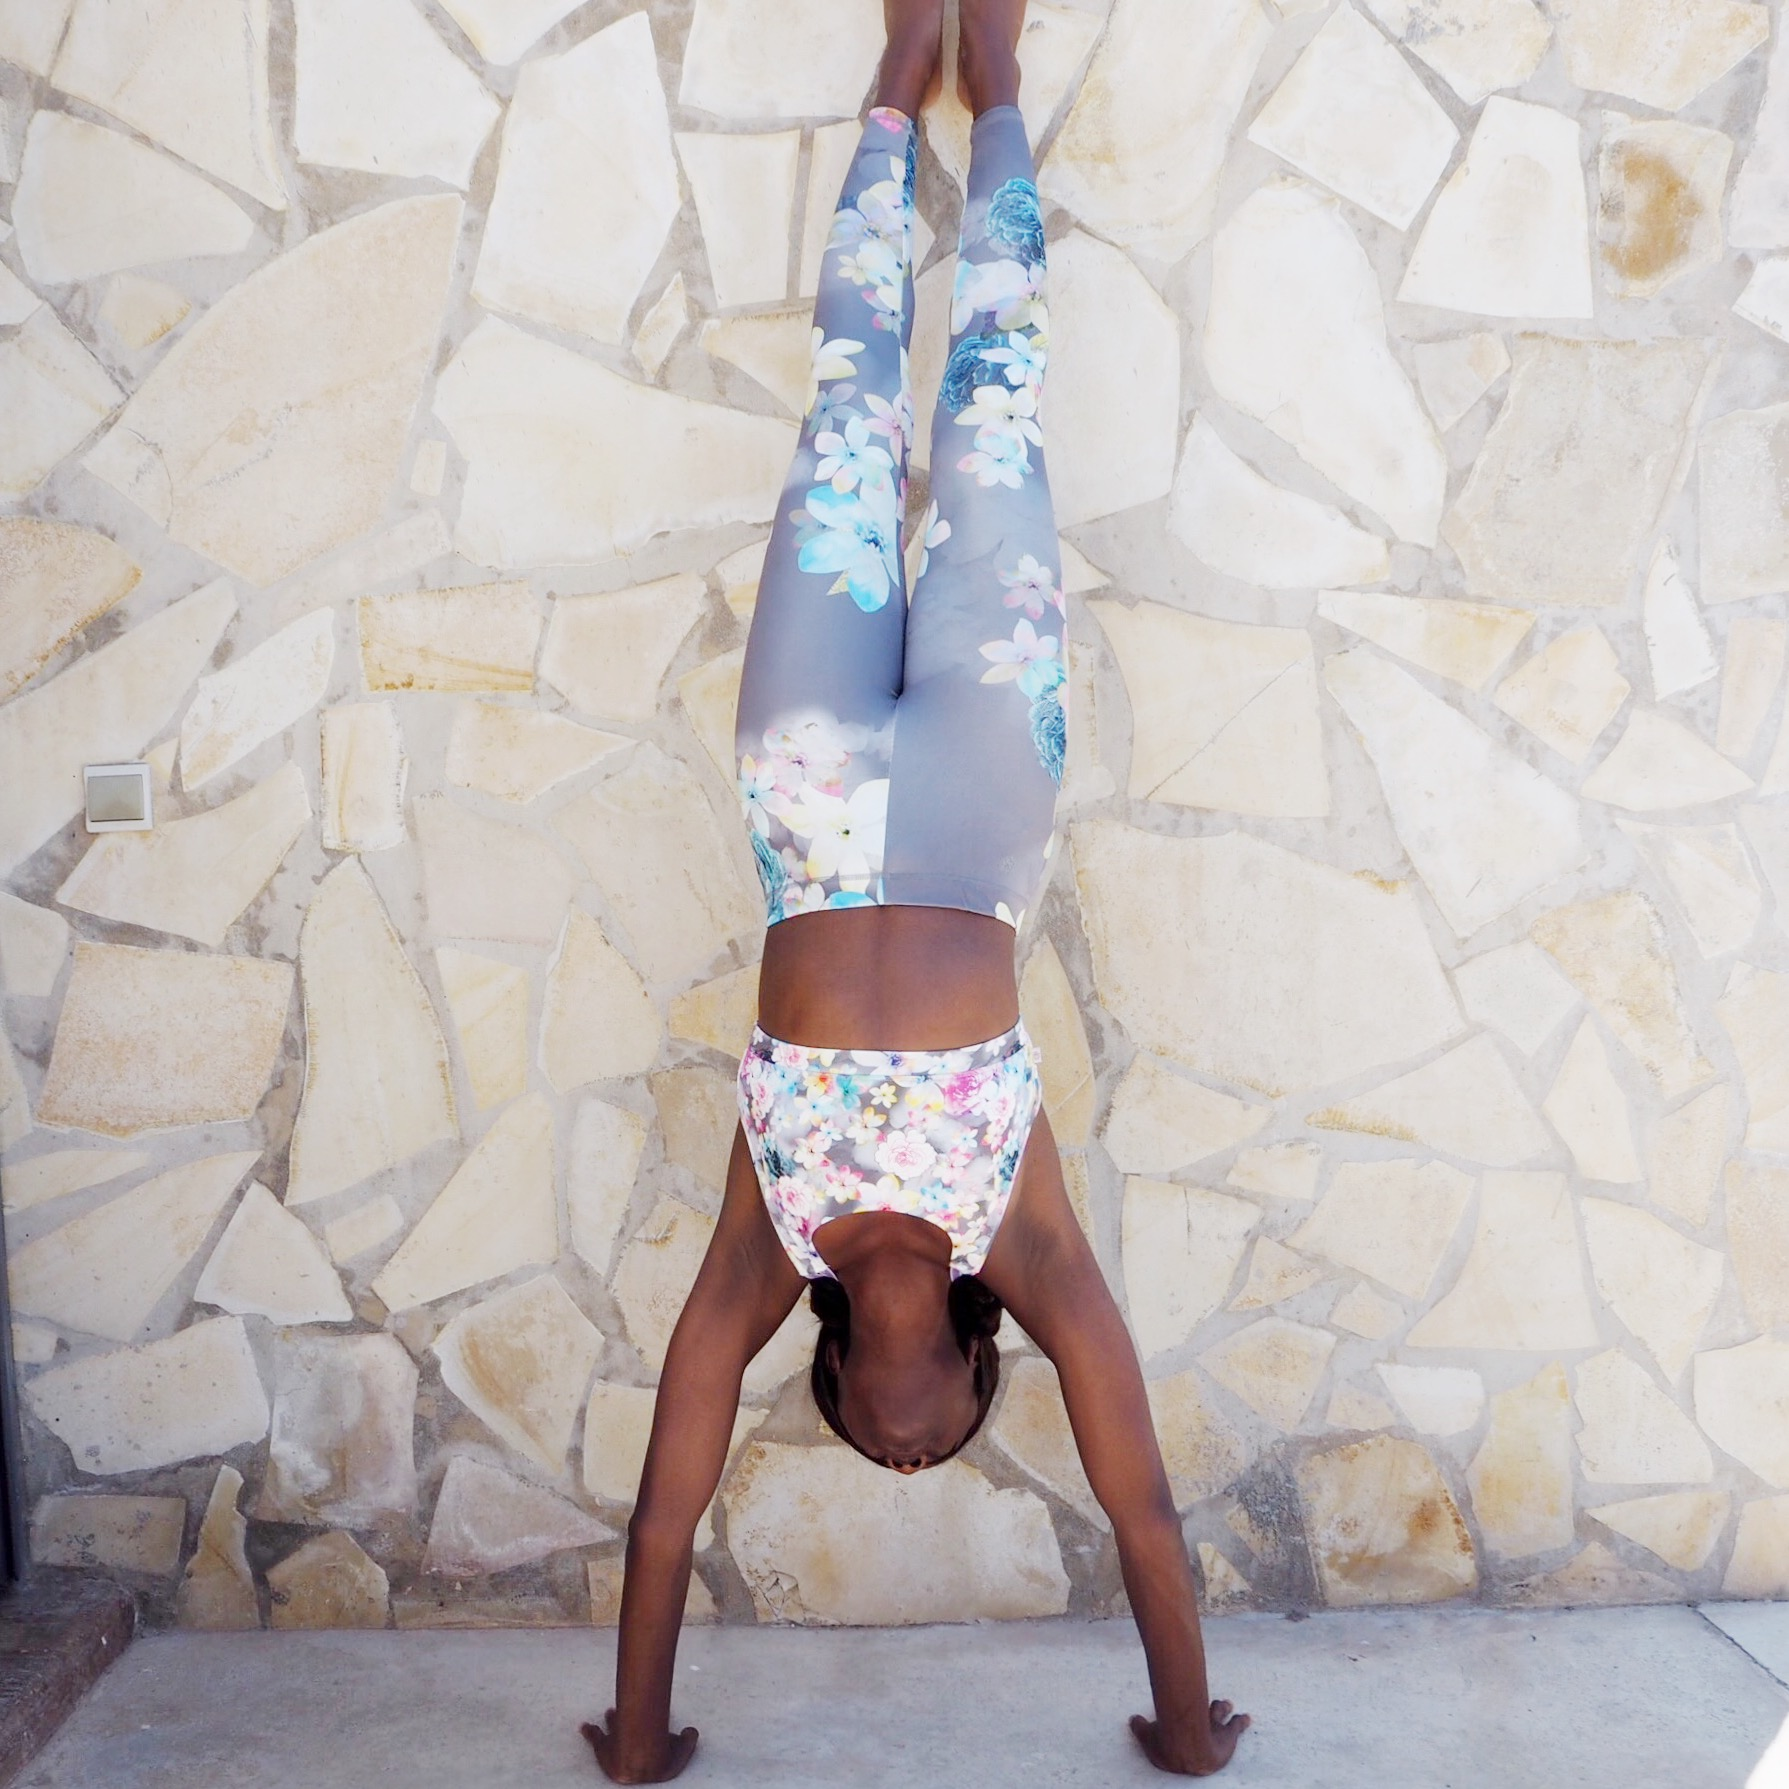 Hand stand wearing accessorize